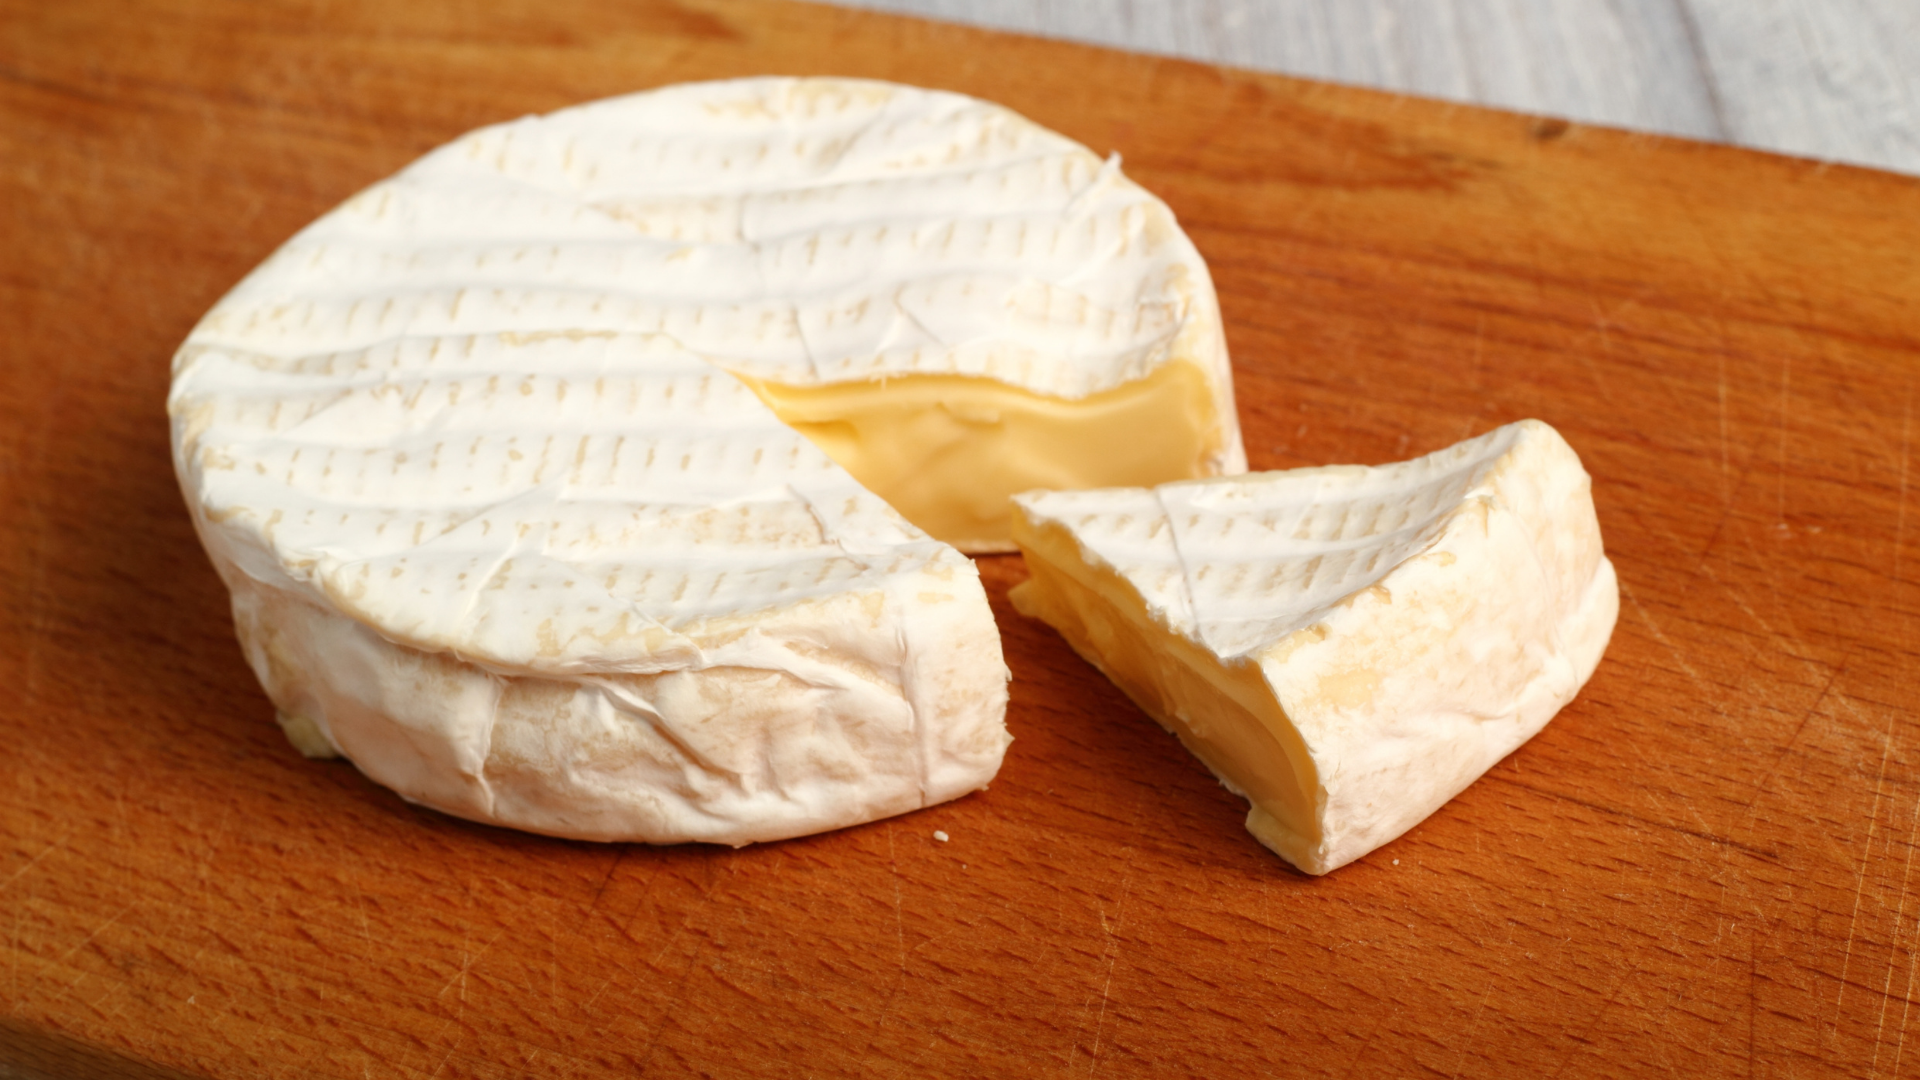 Camembert Cheese on a cutting board with a slice cut out of it.